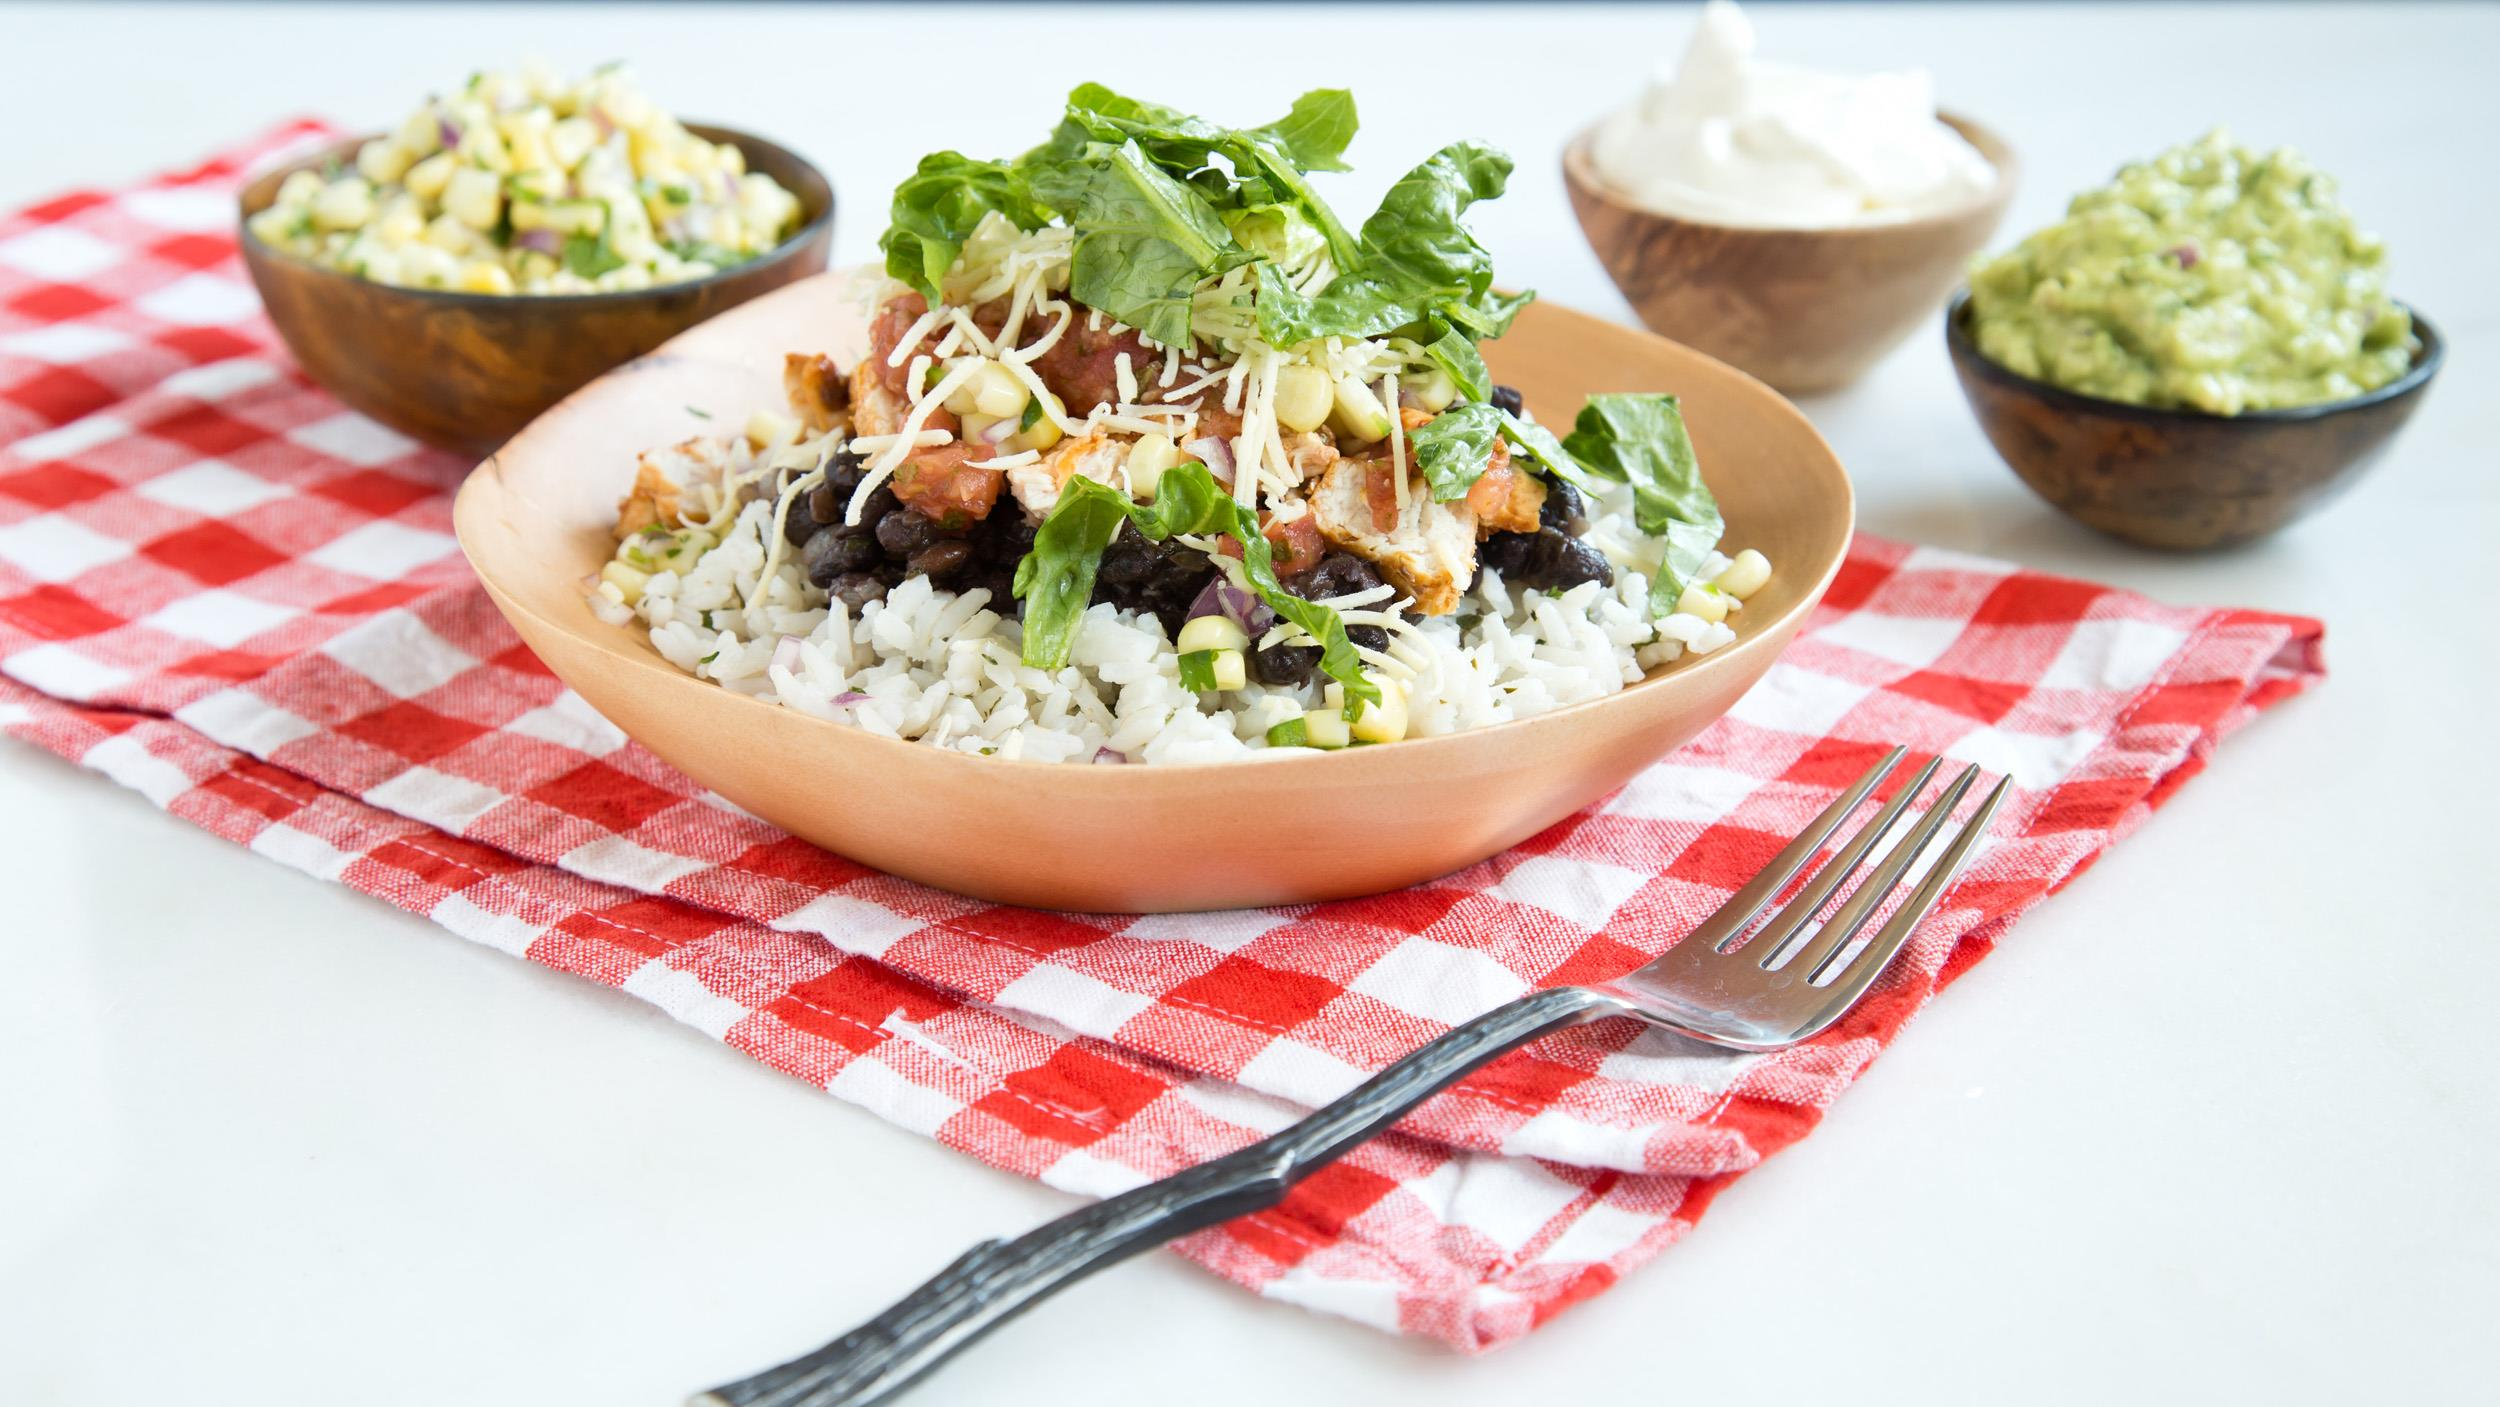 Make this burrito bowl recipe for Chipotle-style takeout from your own ...